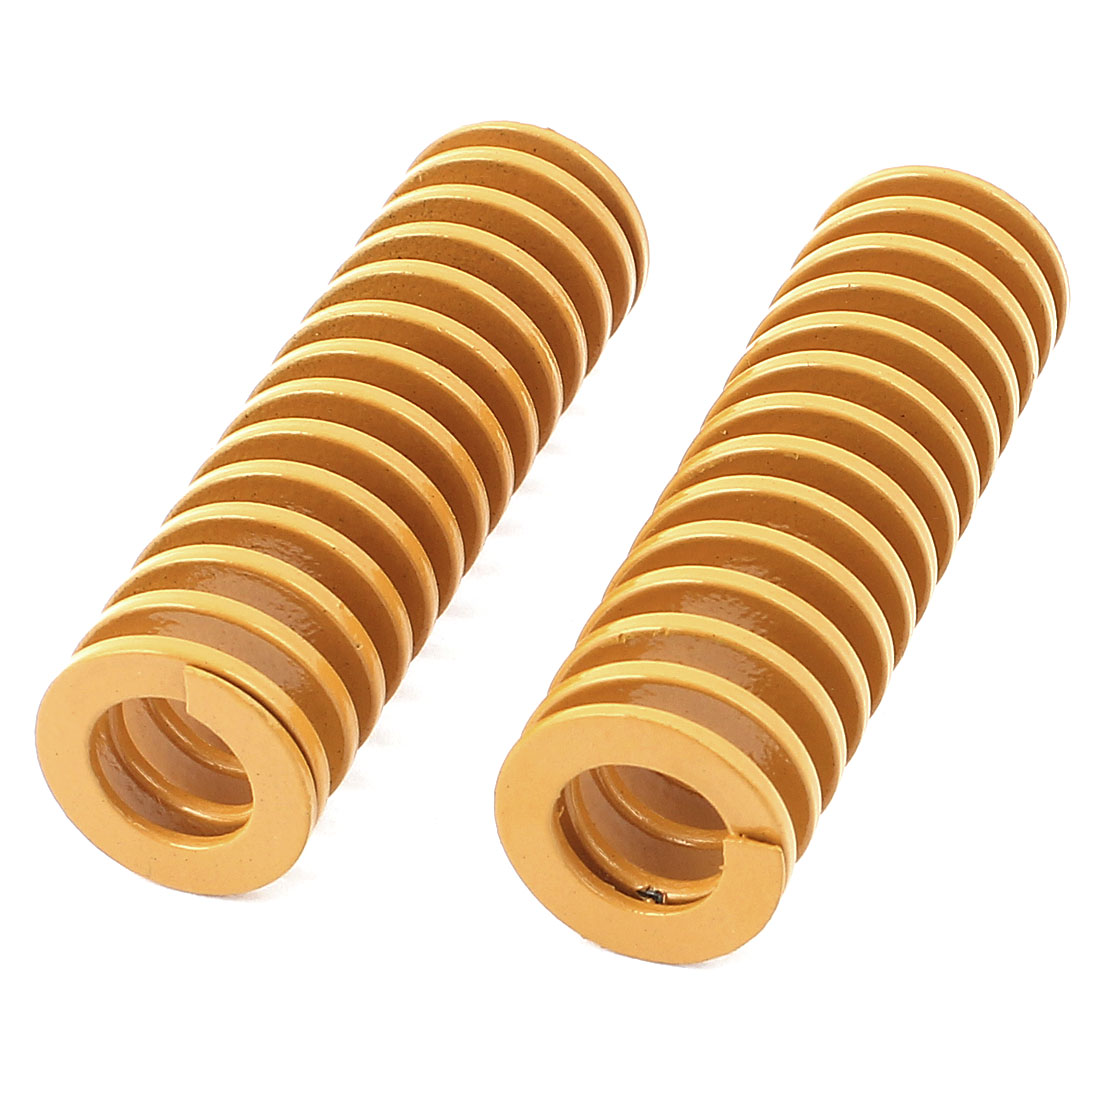 20mm x 65mm Mechanical Metal Spiral Compression Coil Spring Yellow 2 Pcs